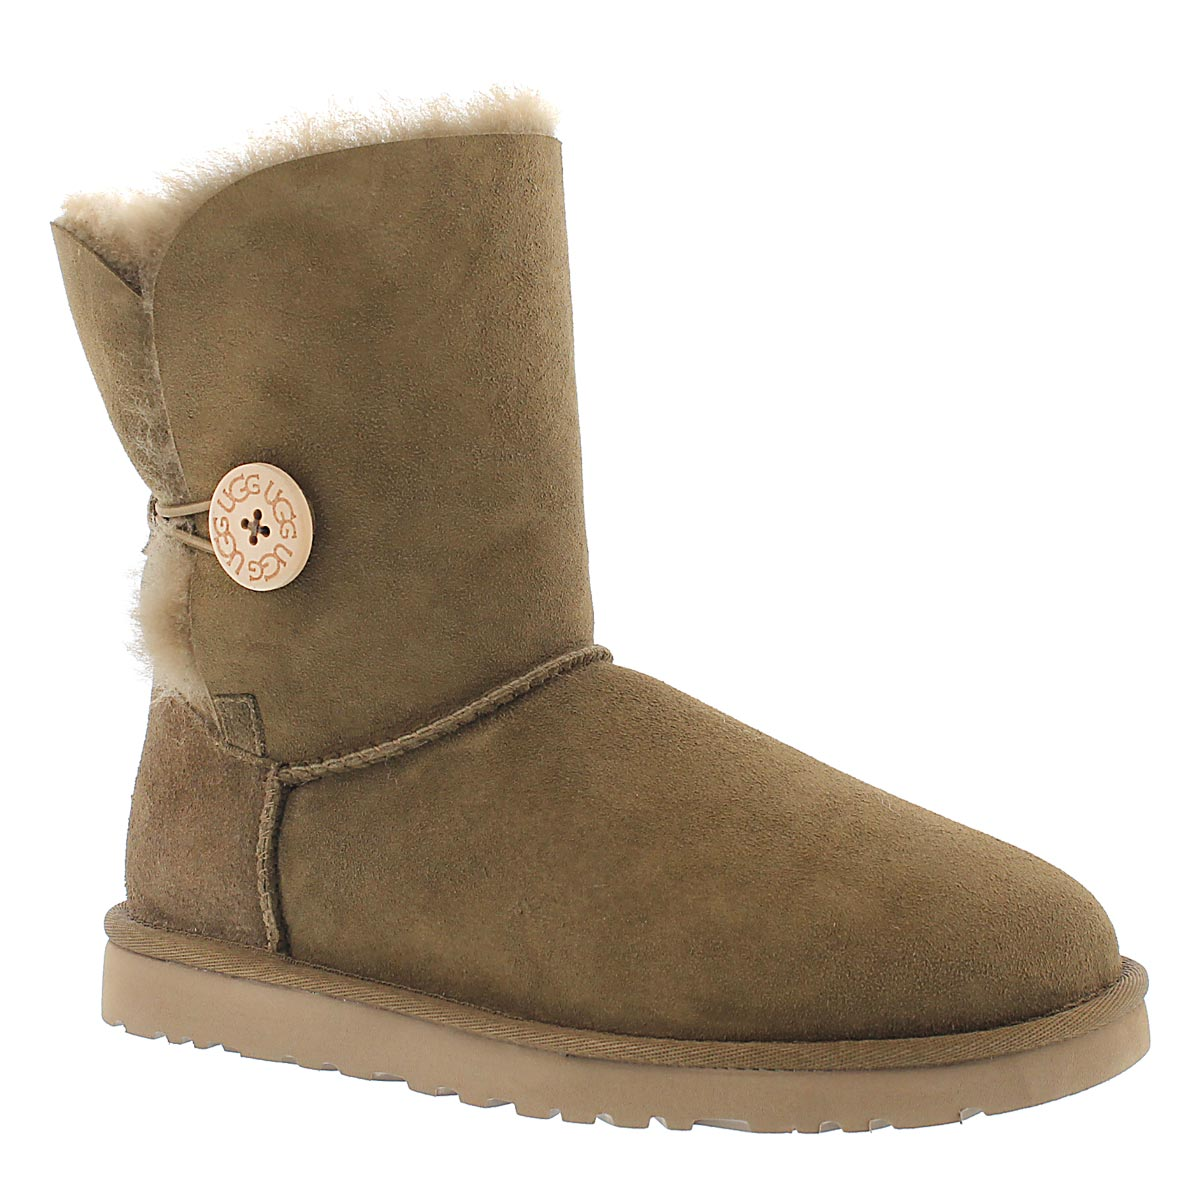 Botte peau mouton brun BAILEY BUTTON, fe